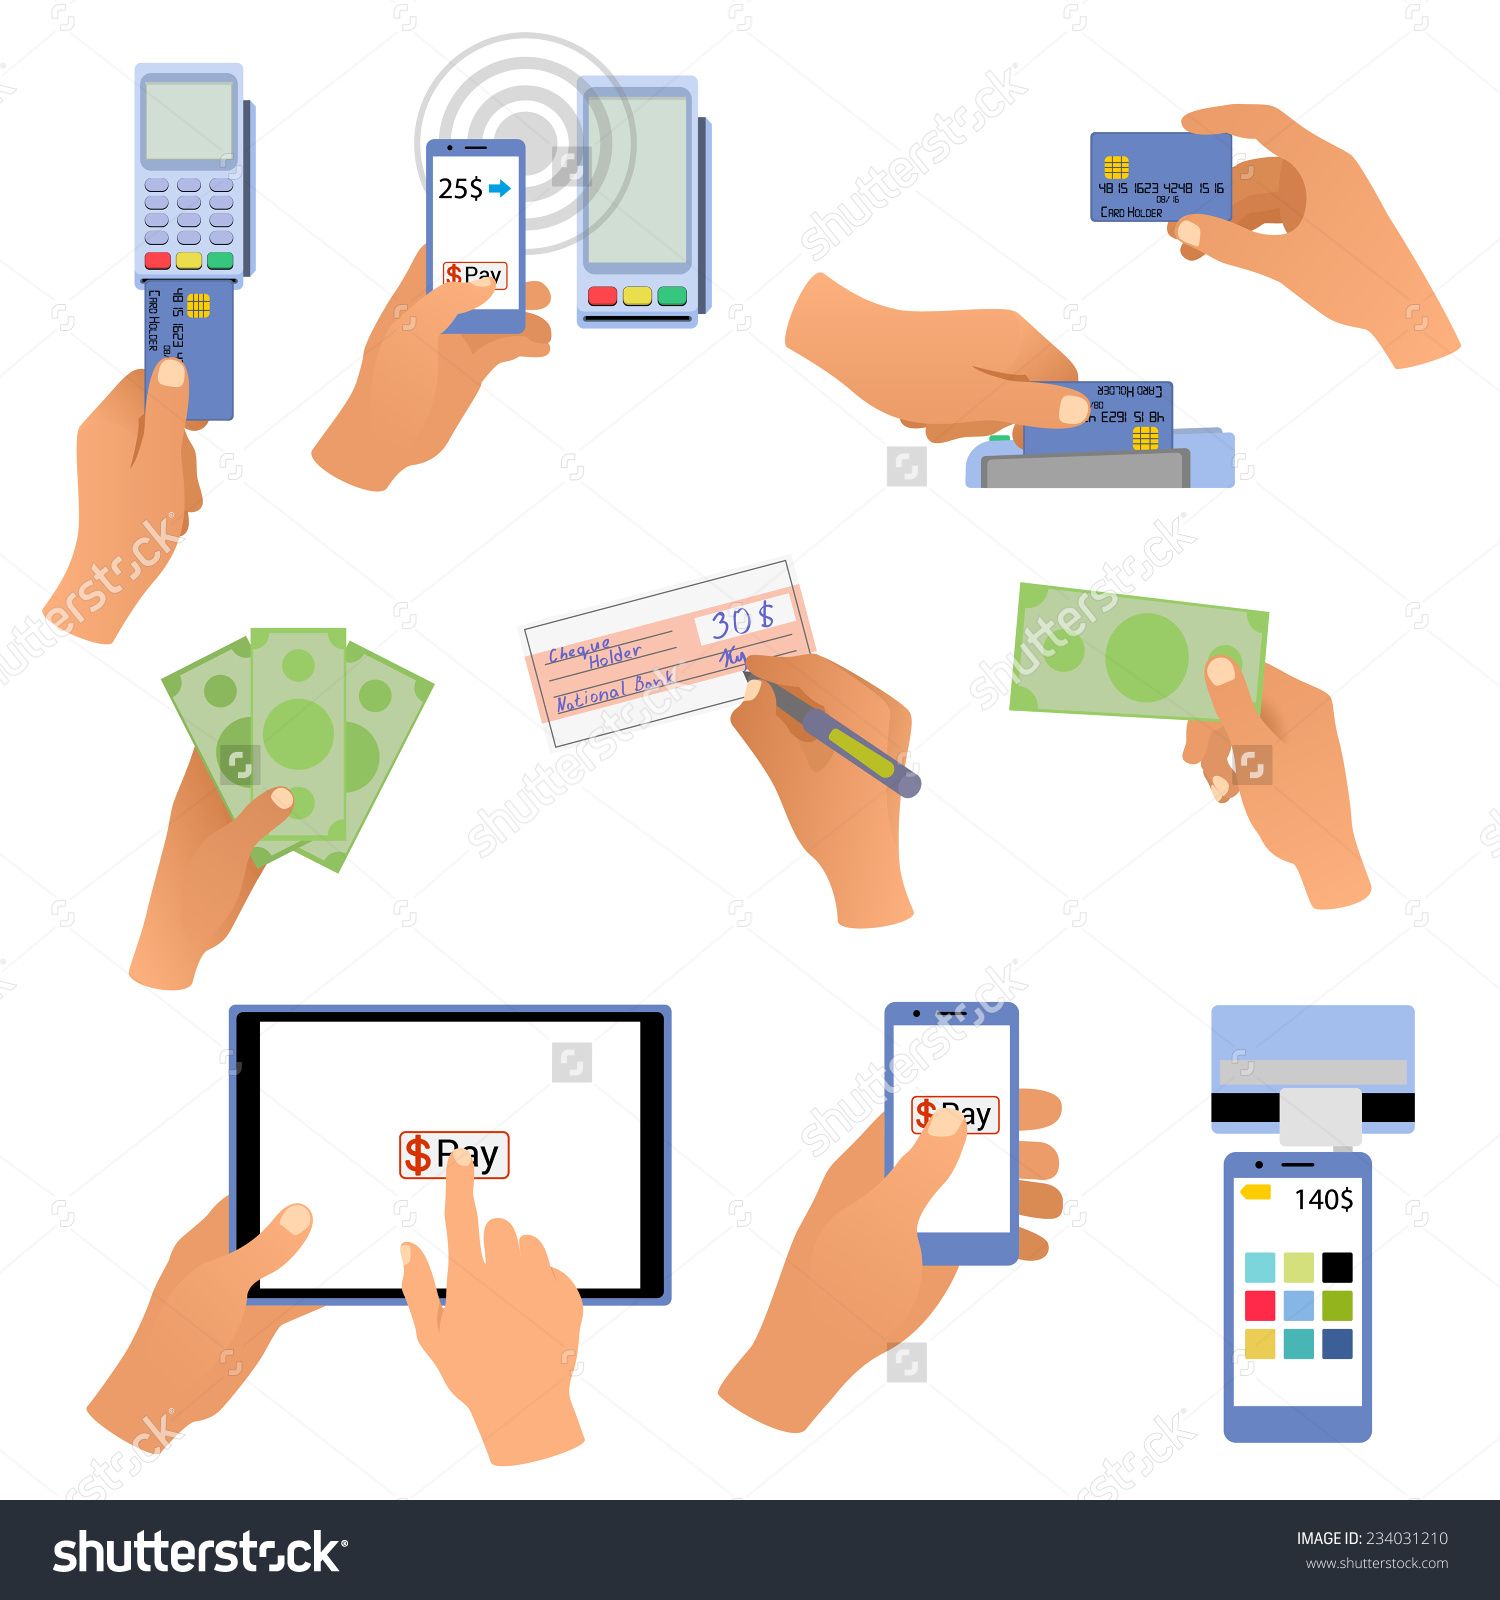 All For Business Payments: Hands Holding Cards, Pos Terminal.